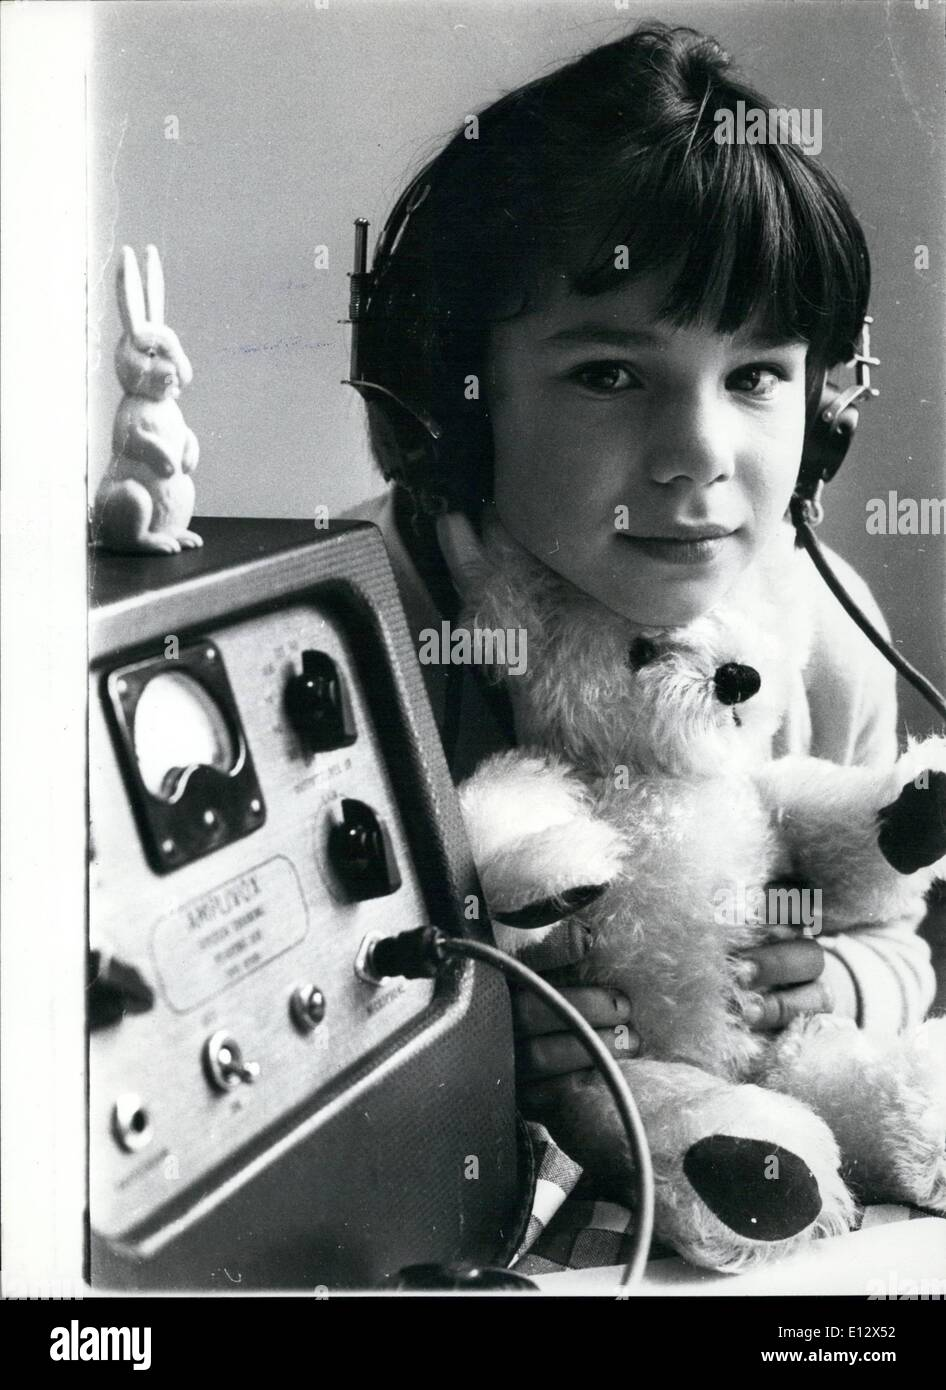 Feb. 26, 2012 - Listening Sharon Martin, 6, listens intently as her teacher speaks to her over the ear phones. She is learning a new phrase. ''This is a teddy bear' - Stock Image